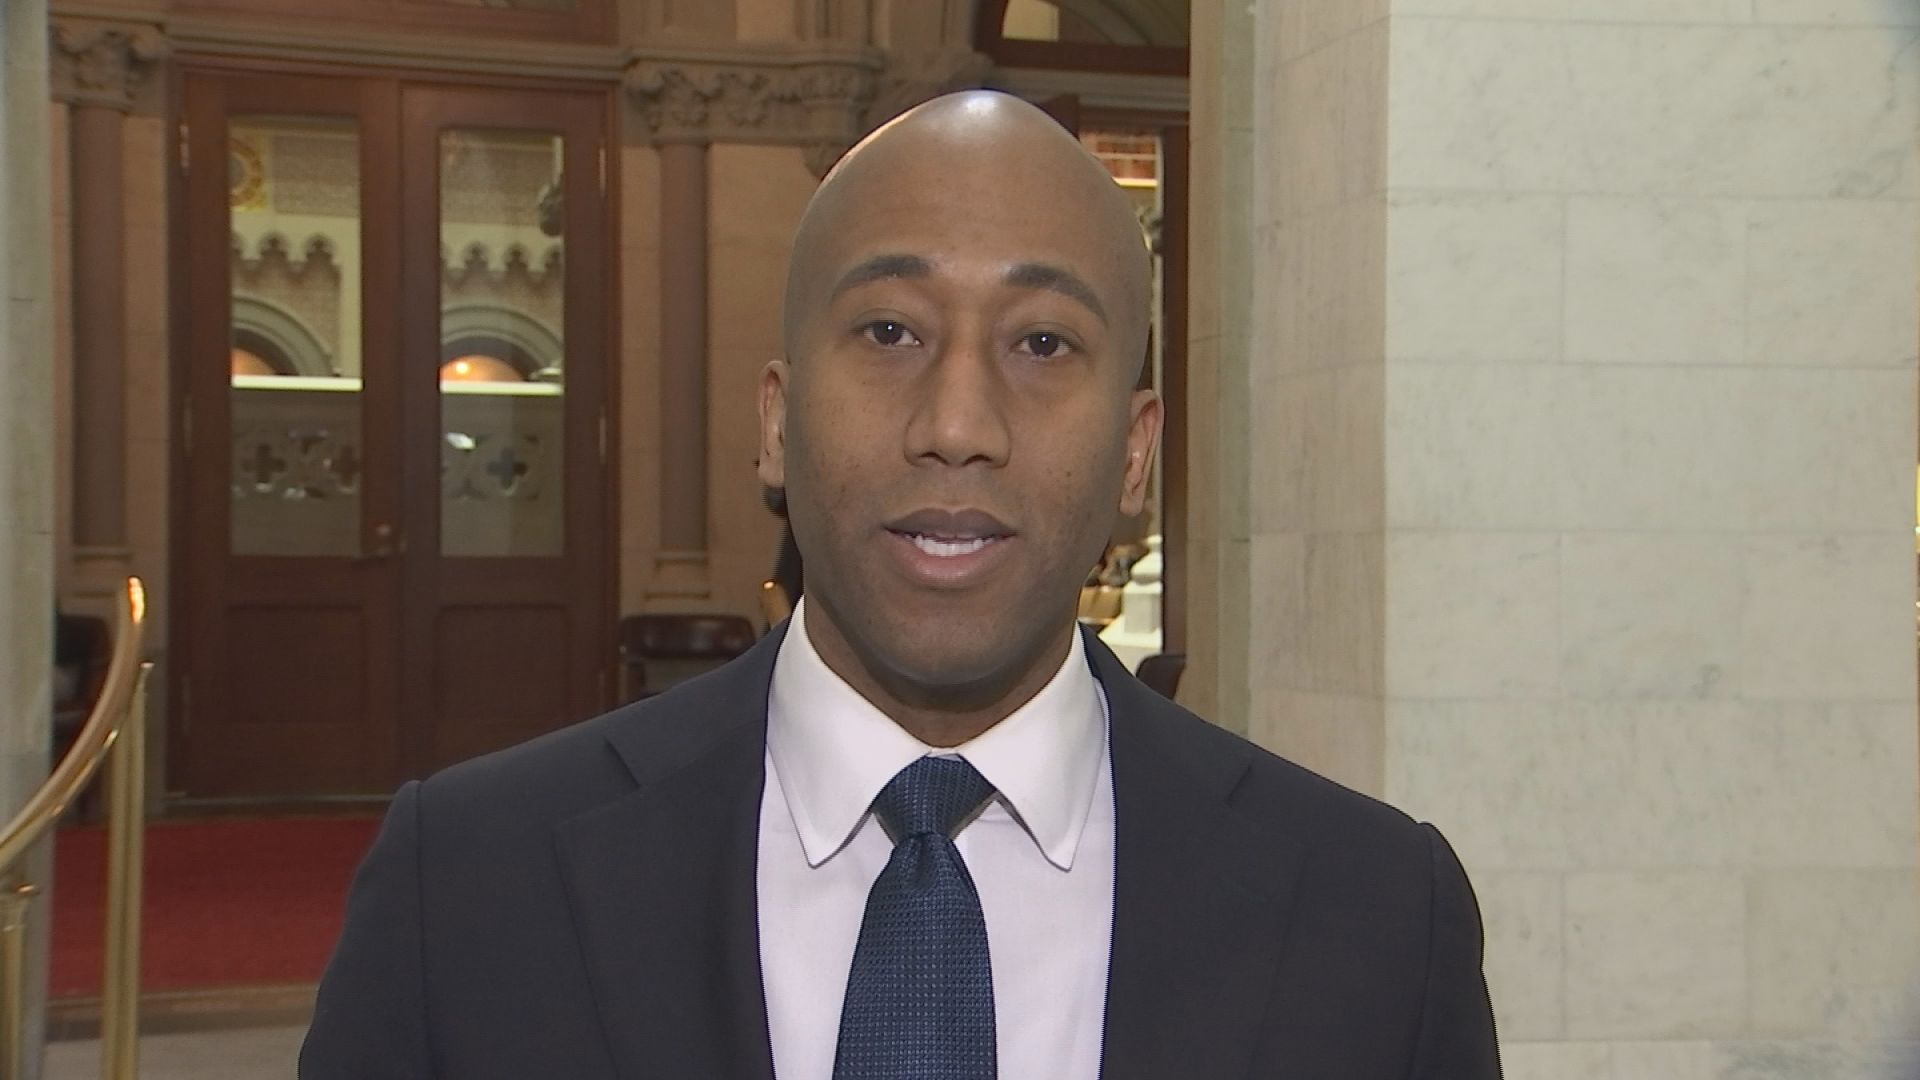 Assemblyman Vanel on Passage of New State Budget